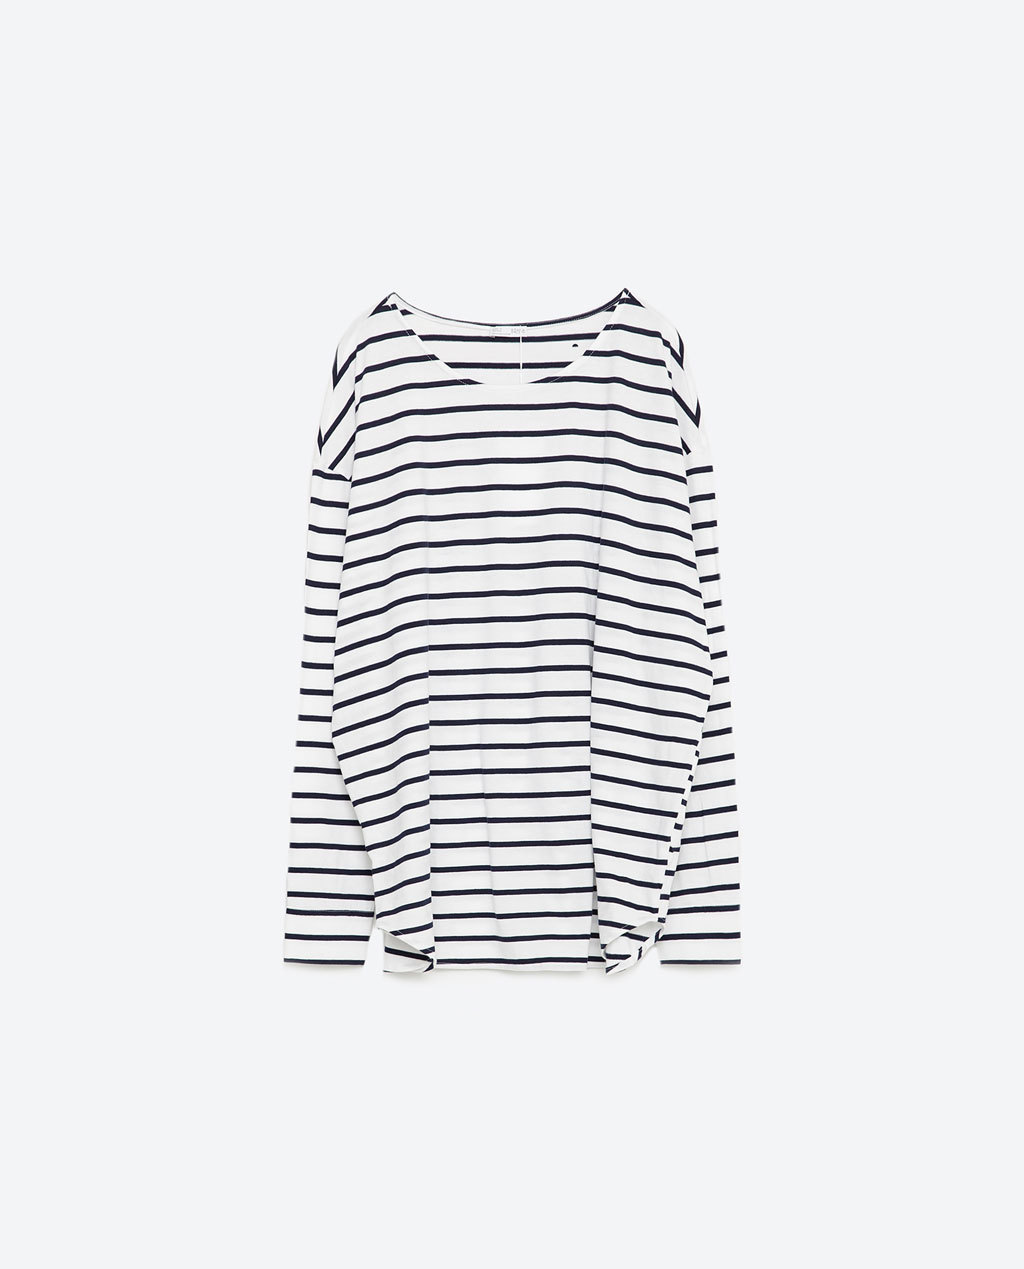 Oversized Top - sleeve style: dolman/batwing; pattern: horizontal stripes; length: below the bottom; secondary colour: white; predominant colour: royal blue; occasions: casual; style: top; fibres: cotton - 100%; fit: straight cut; neckline: crew; sleeve length: long sleeve; pattern type: fabric; pattern size: standard; texture group: jersey - stretchy/drapey; season: s/s 2016